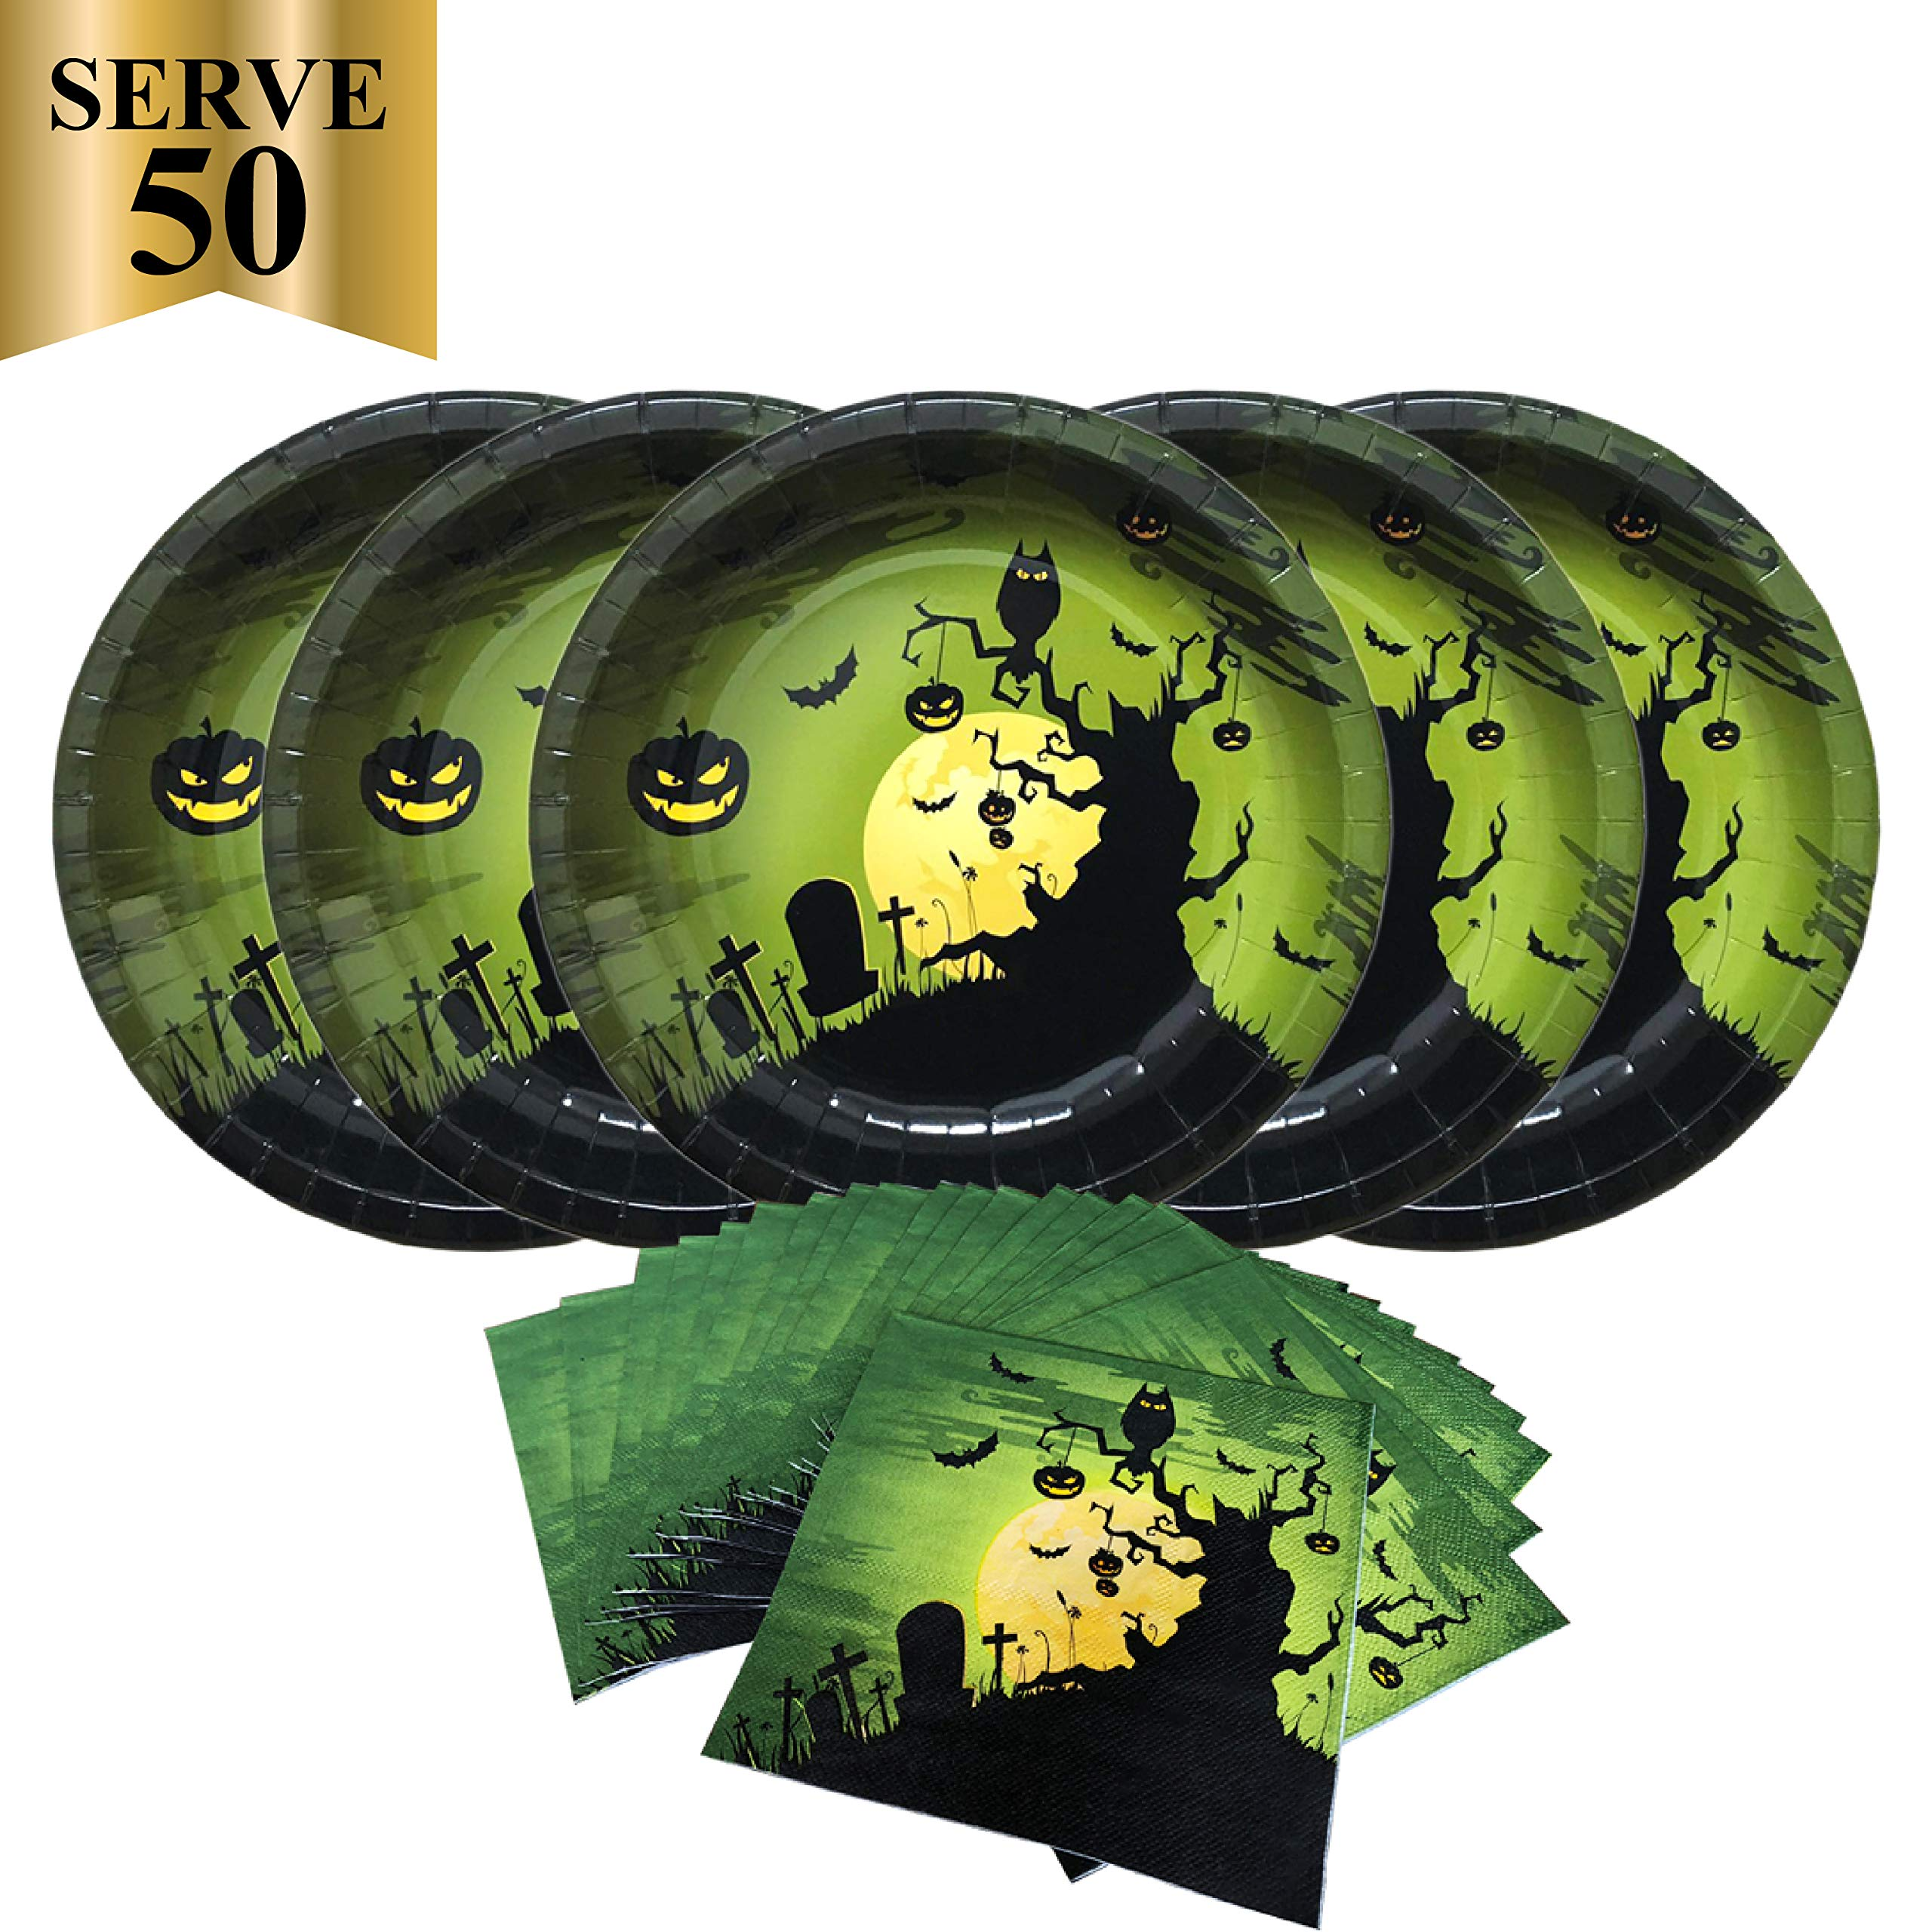 Halloween Creepy Haunting Midnight Paper Party Pack-Serves 50- Includes 10 Inches Big Paper Plates and Luncheon Napkins by Gatherfun